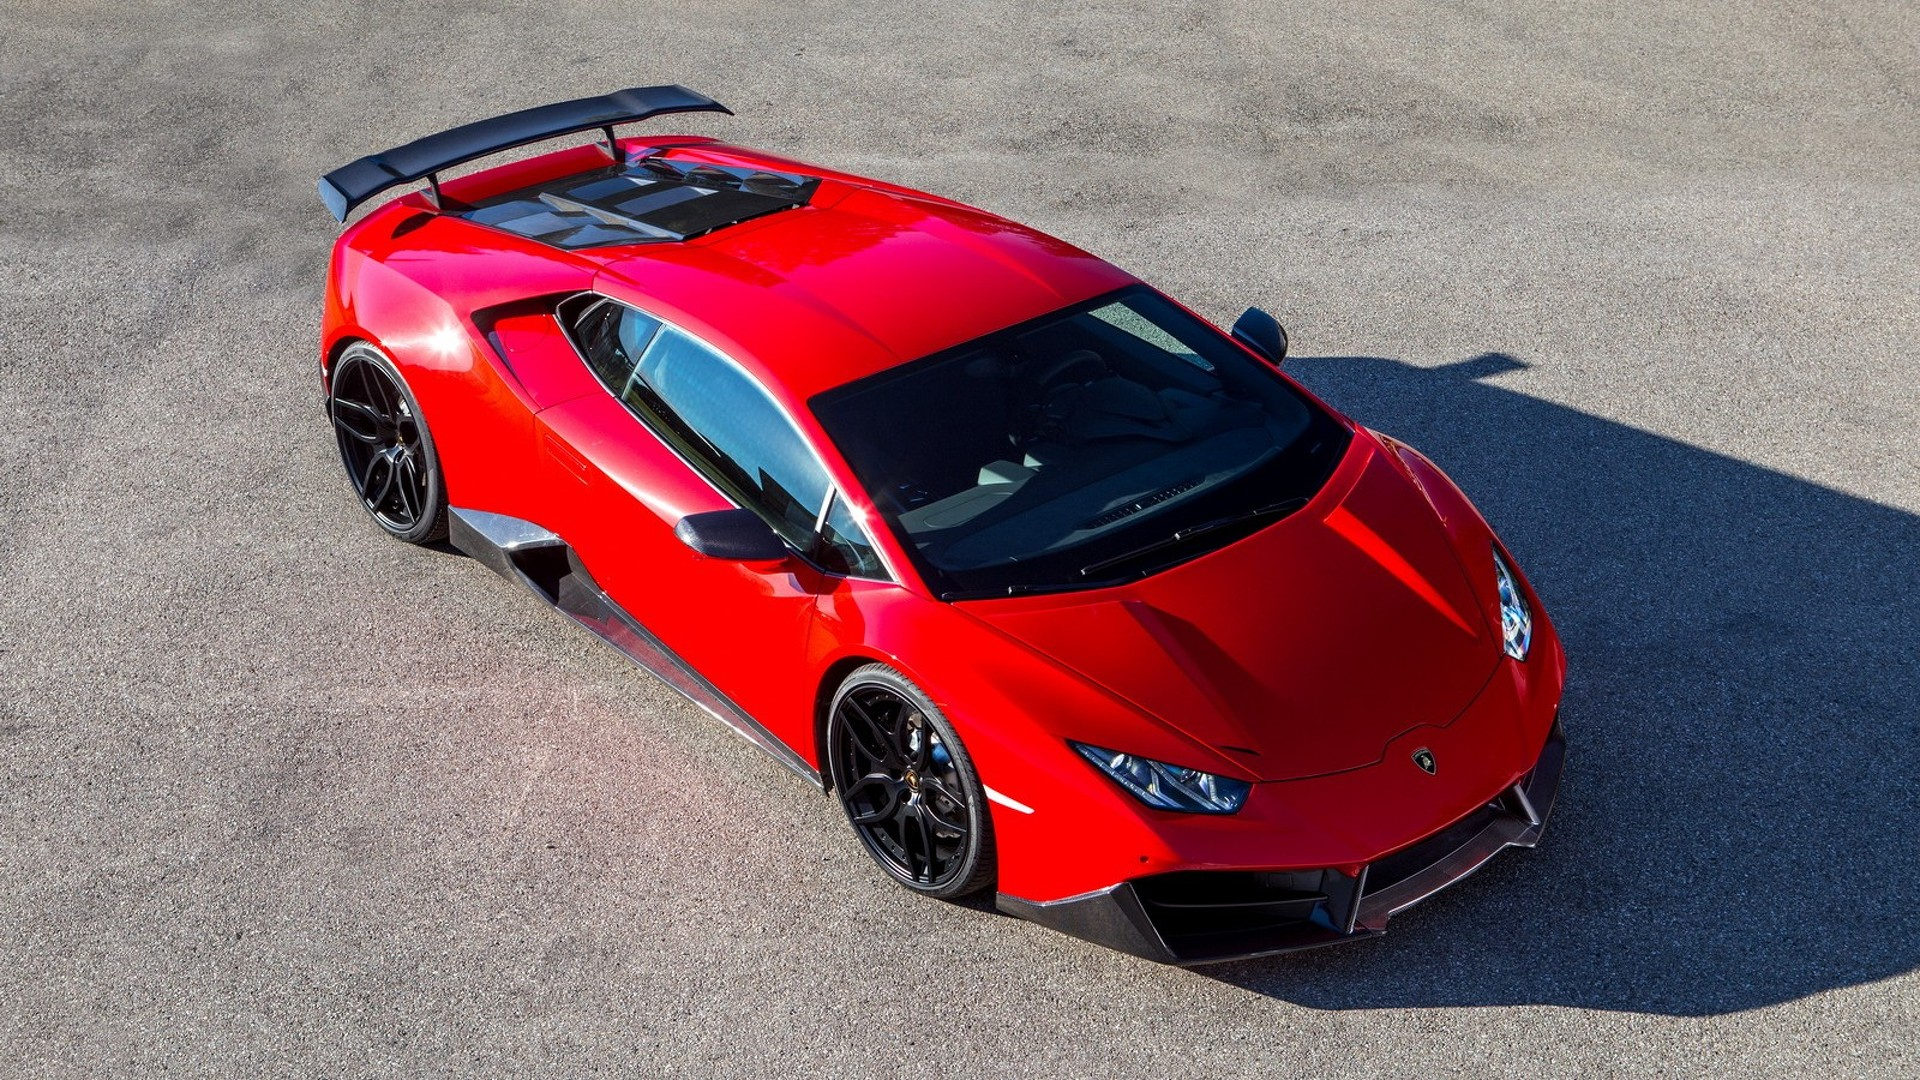 Lamborghini Huracan Horsepower >> Supercharged Lamborghini Huracan Sends 830 Hp To Rear Wheels